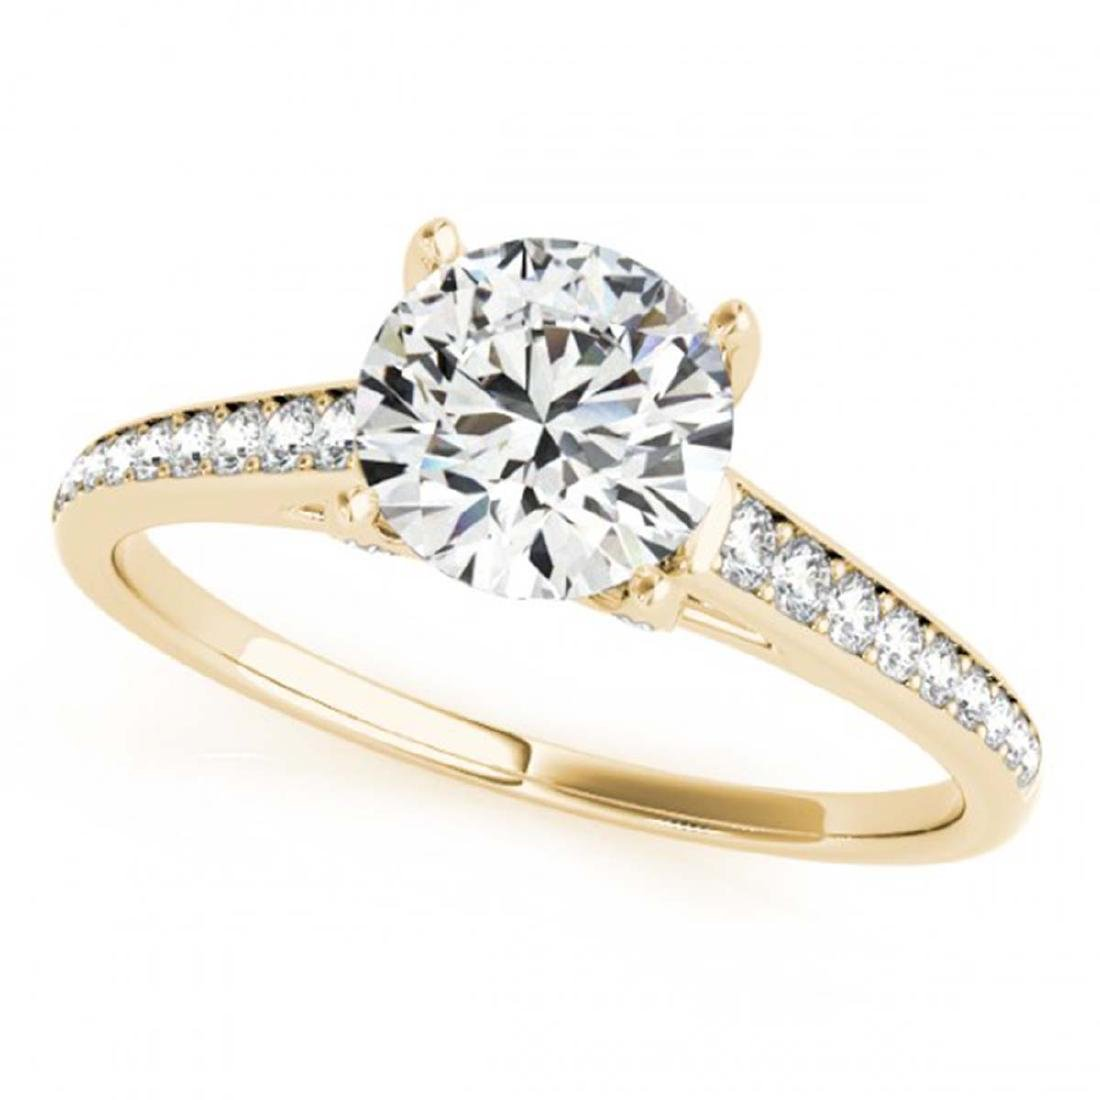 1.20 ctw VS/SI Diamond Solitaire Ring 14K Yellow Gold -